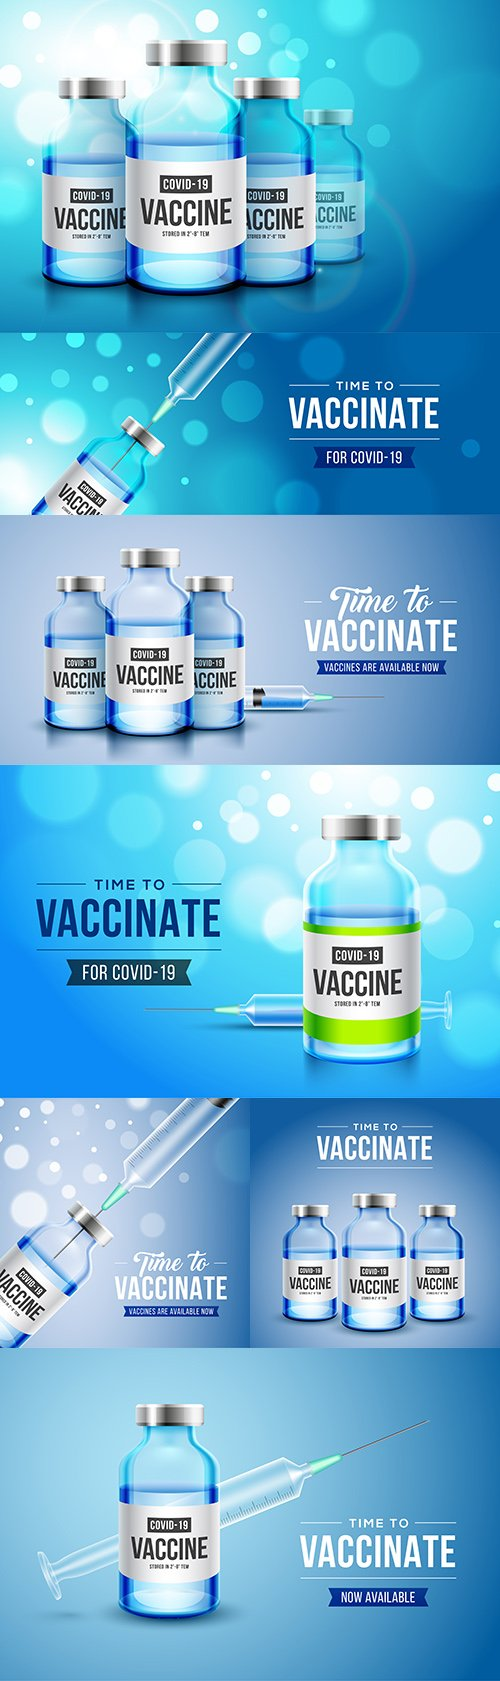 Vaccination against covid-19 coronavirus with realistic 3D bottle